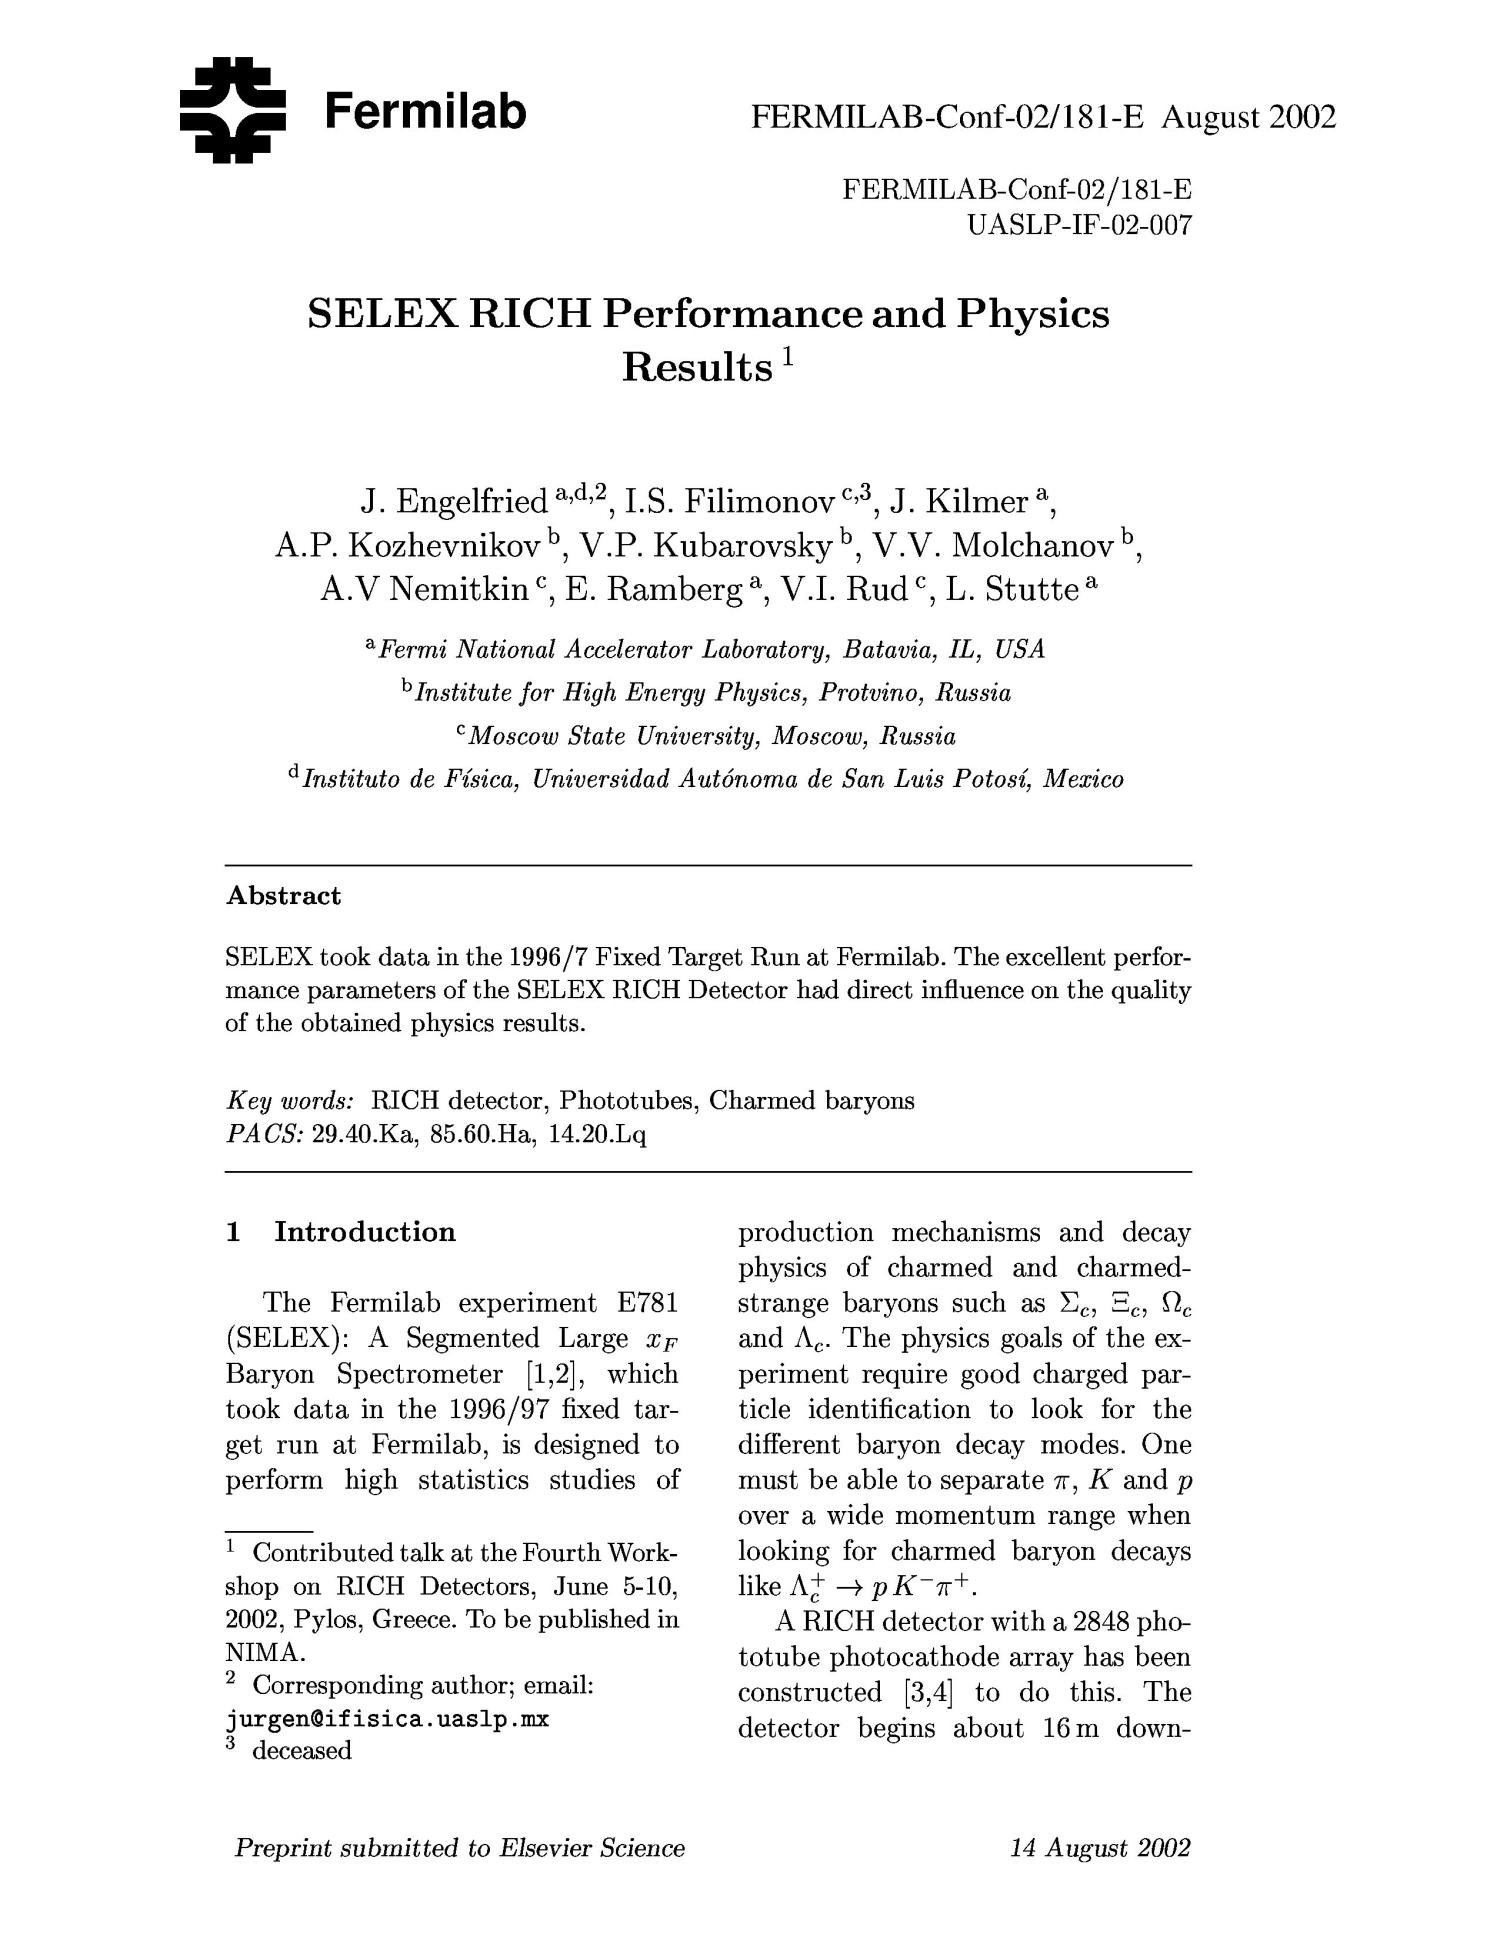 SELEX RICH performance and physics results                                                                                                      [Sequence #]: 1 of 5